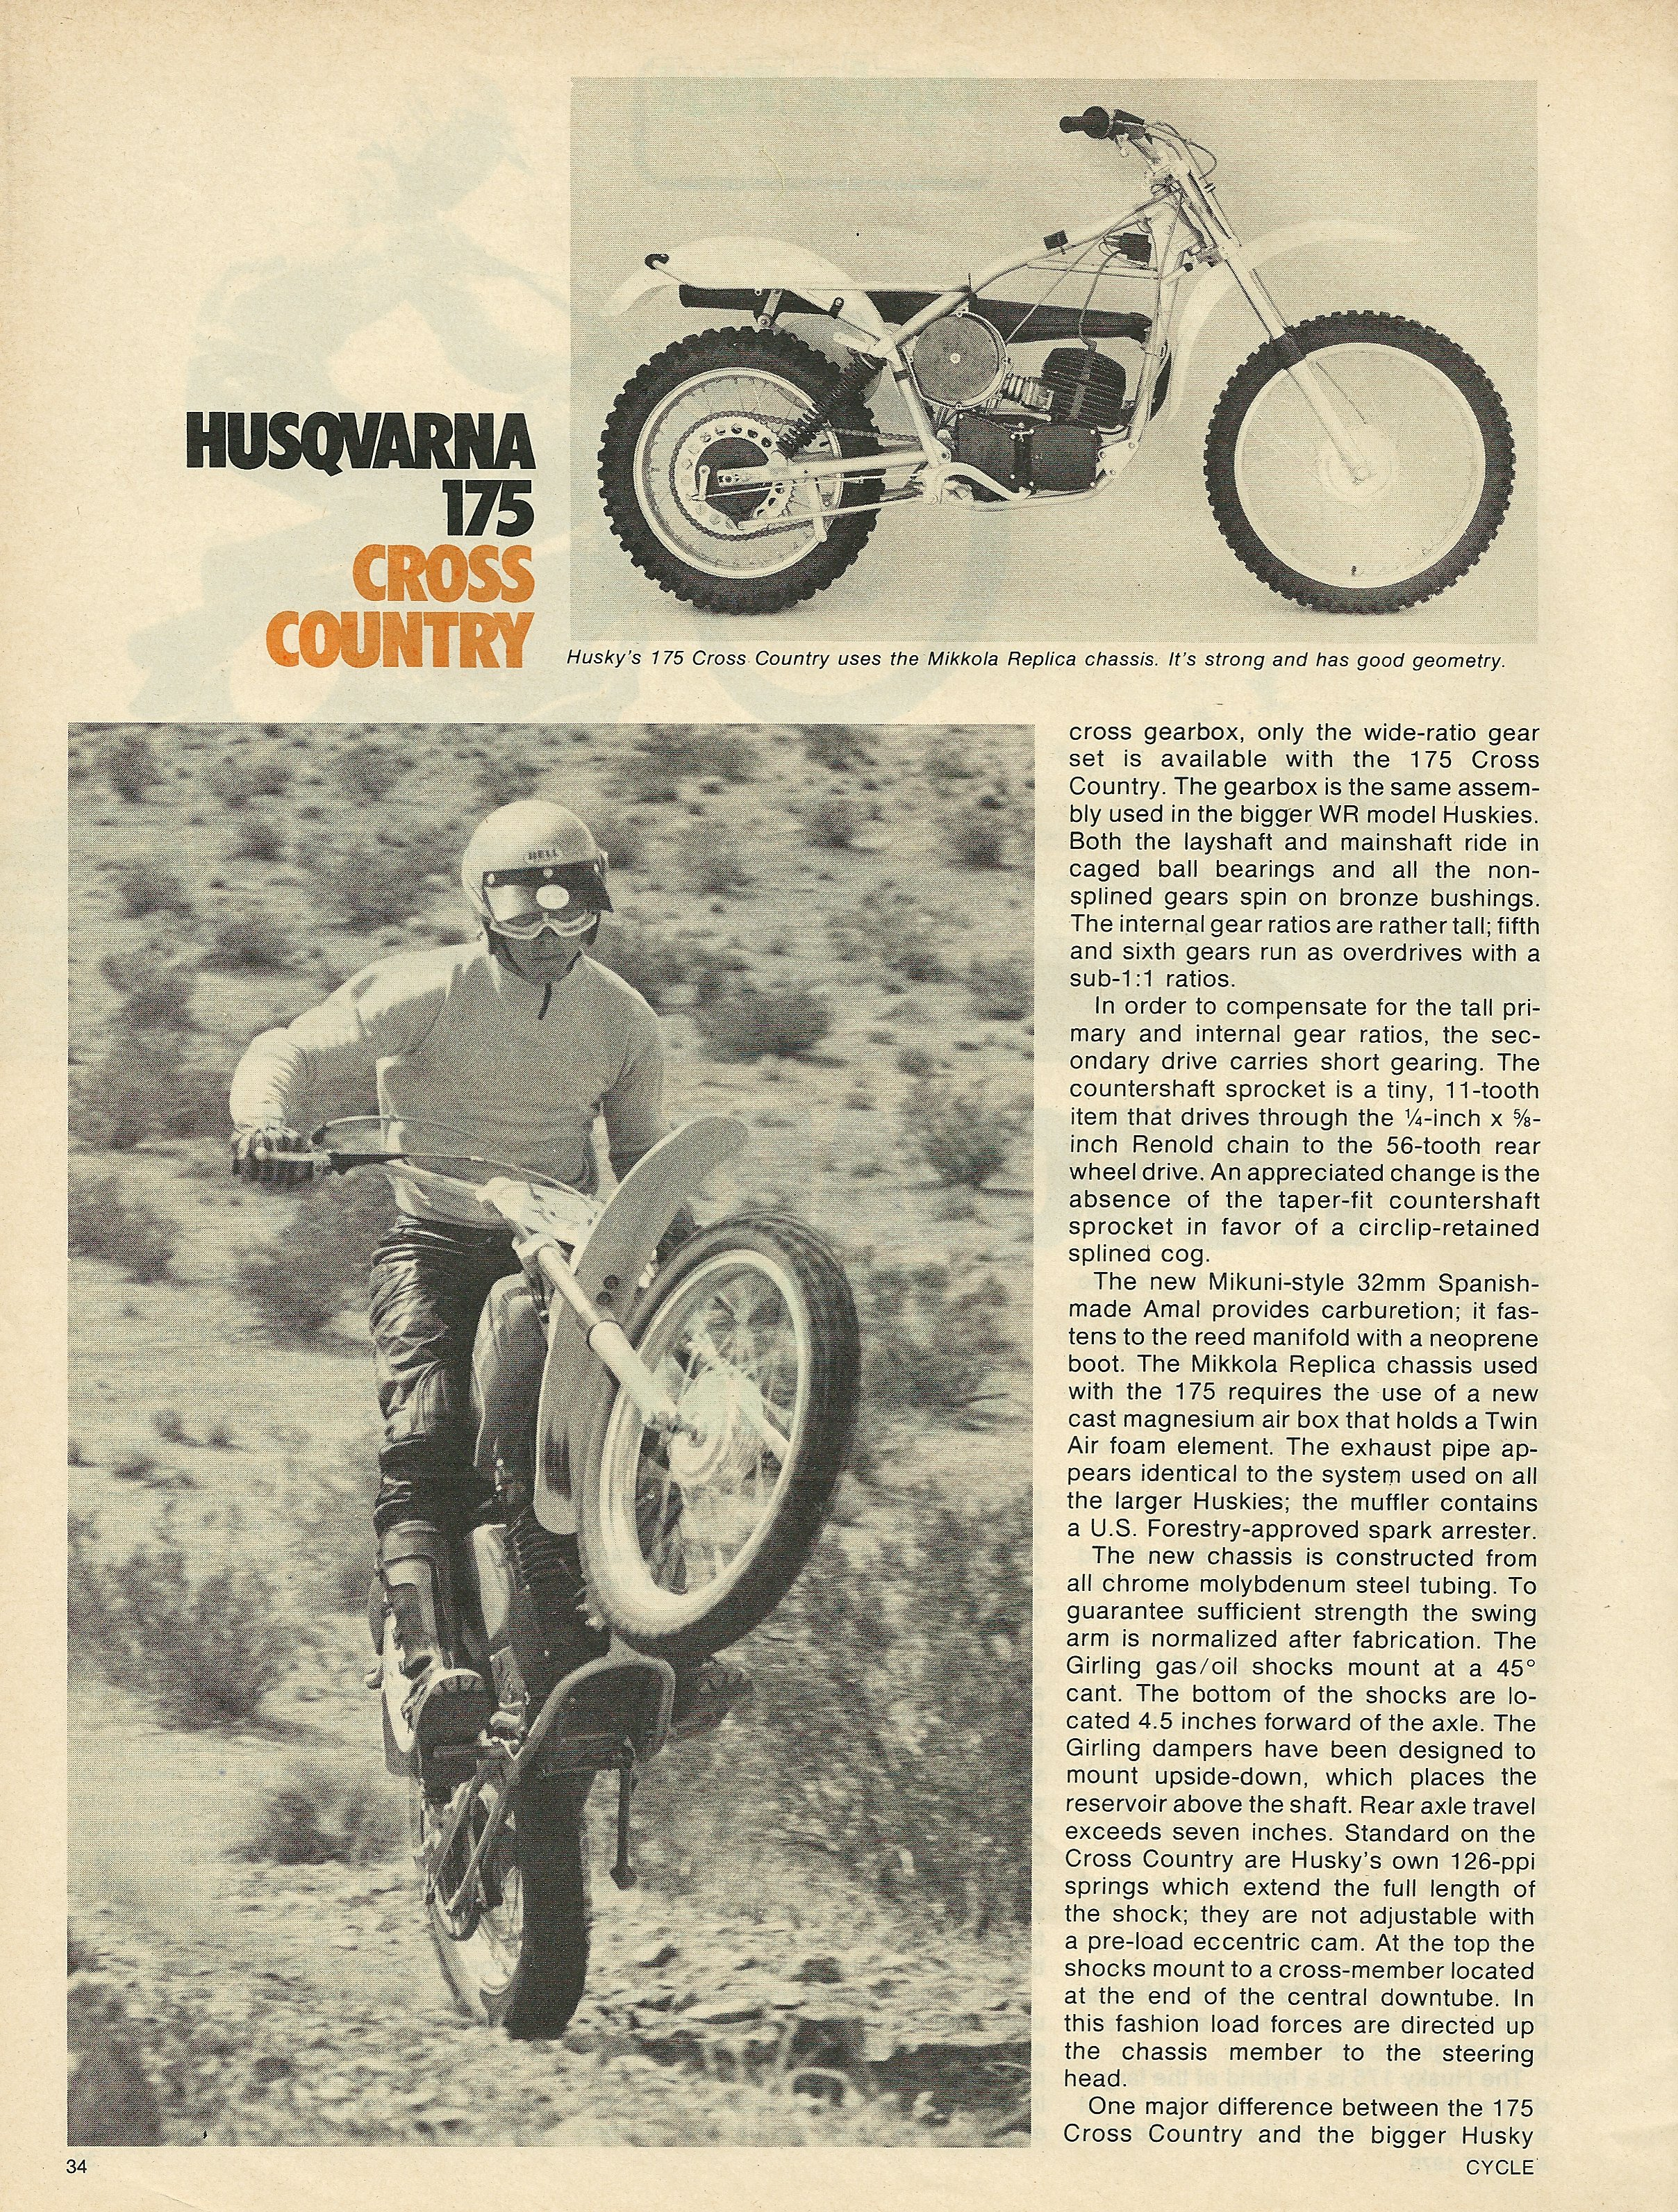 1975 Husqvarna 175 off road test 2.JPG